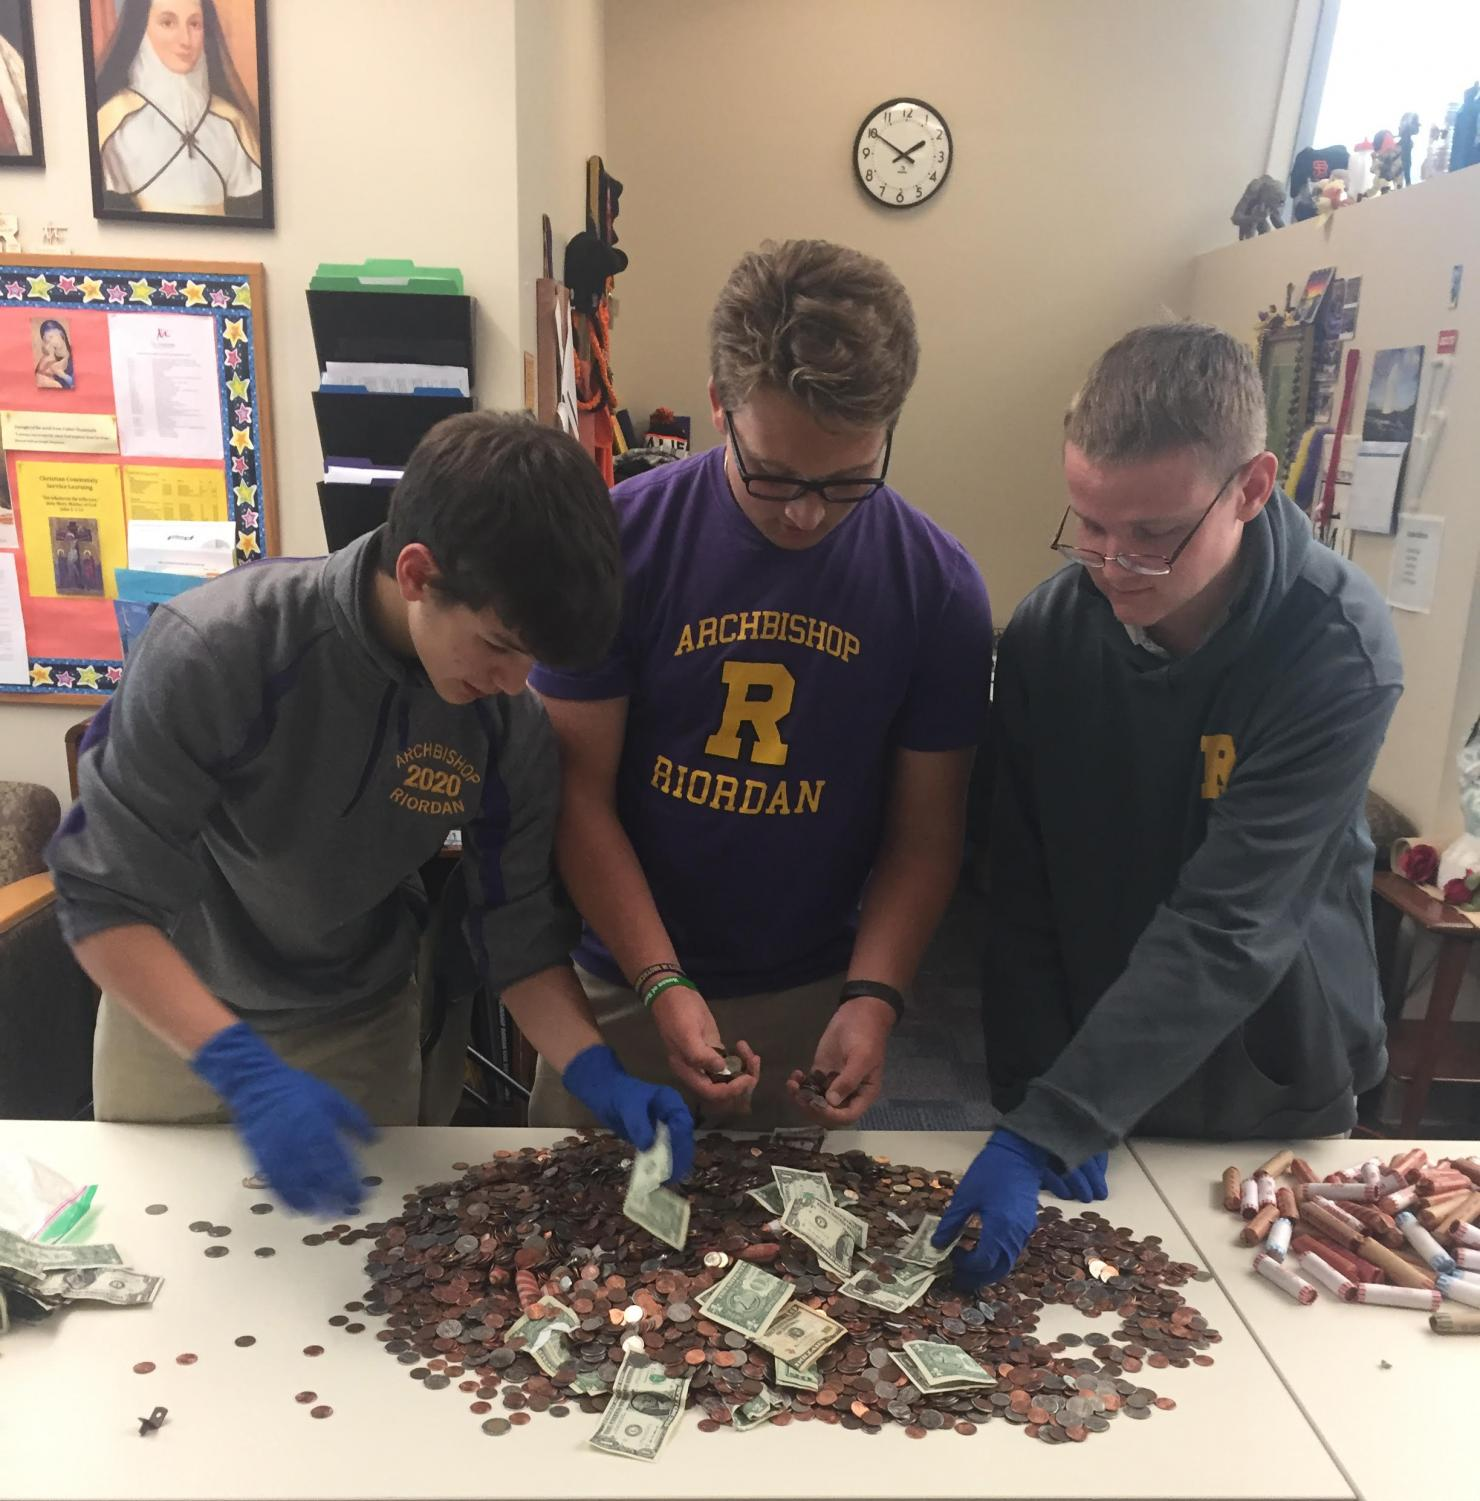 Michael Gray '20, Zachary Phillips '20, and Caelan Bevan-Abel '19 count coins and cash donated to the Billy Choy AIDS Penny Drive.